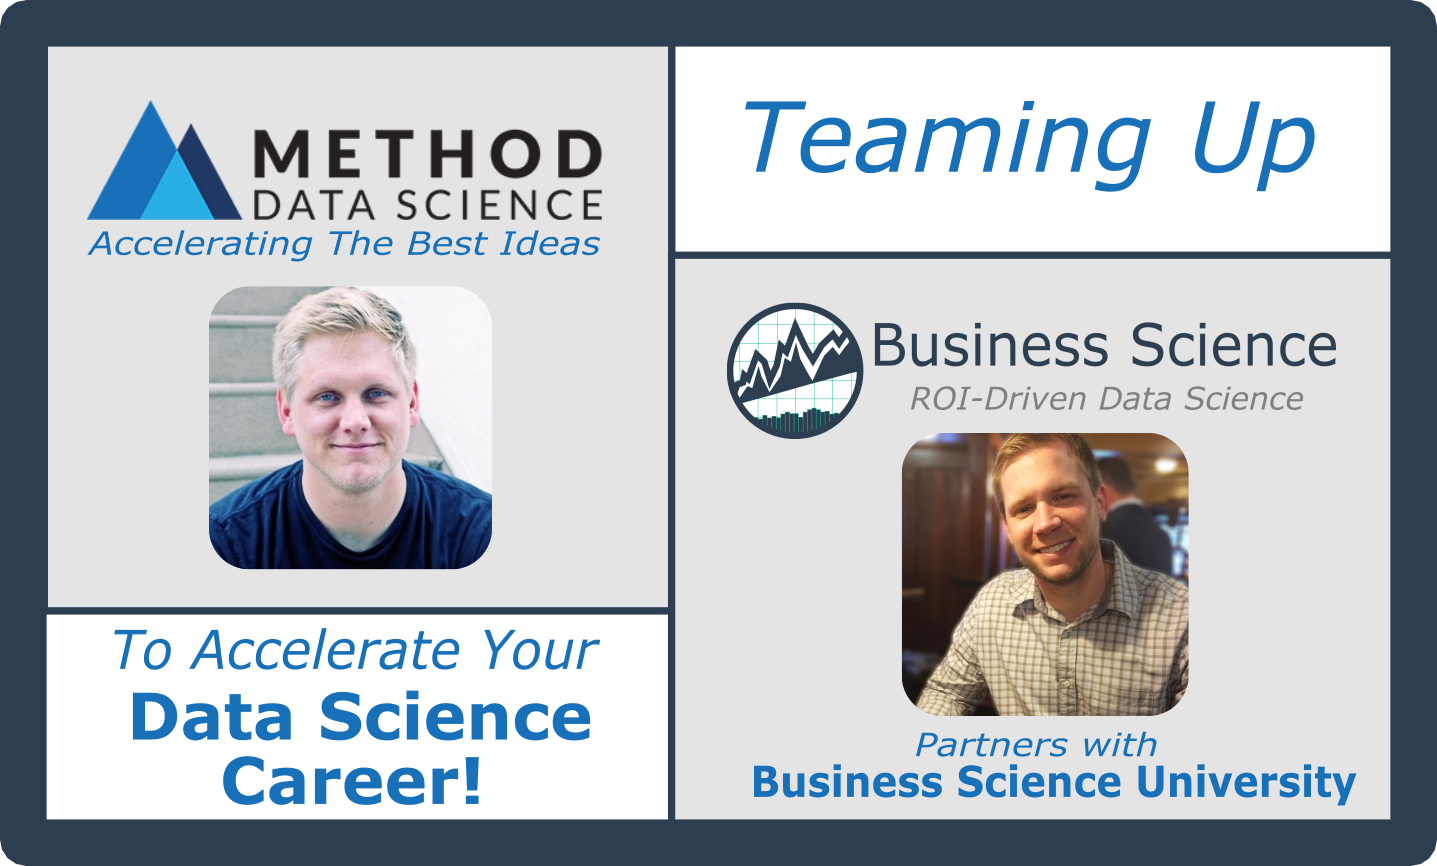 Press Release: Business Science Partners With Method Data Science To Accelerate Your Data Science Career